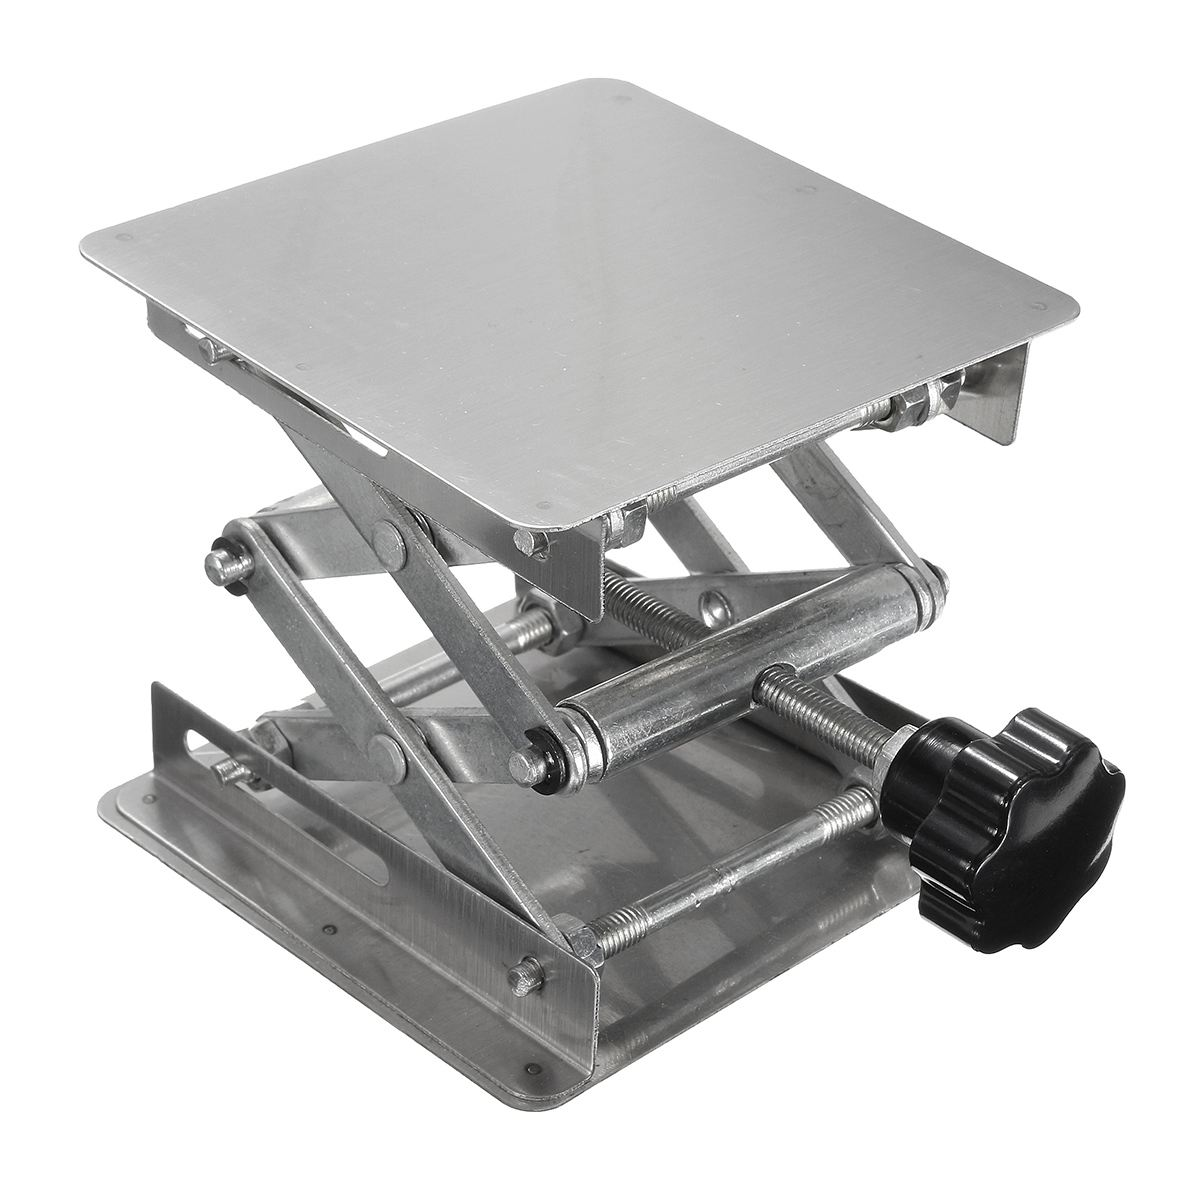 100*100mm Stainless steel Land Stand Lift Laboratory Lifting Platform Equipment 4X4 Office Lab Supplies100*100mm Stainless steel Land Stand Lift Laboratory Lifting Platform Equipment 4X4 Office Lab Supplies